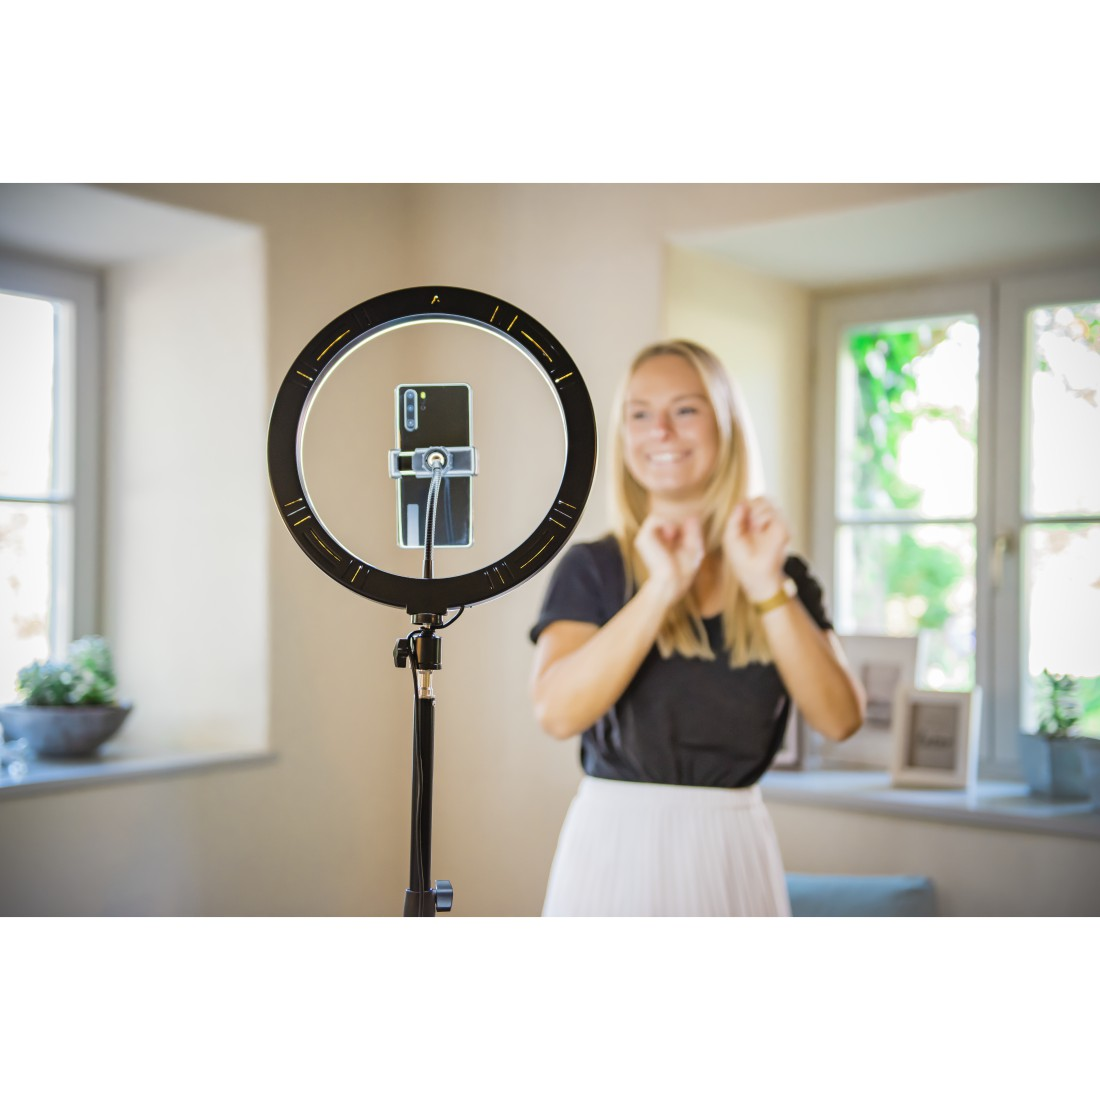 "awx9 High-Res Appliance 9 - Hama, ""SpotLight Steady 120"" LED Ring Light, Set for Smartphone, Tripod, 12"""